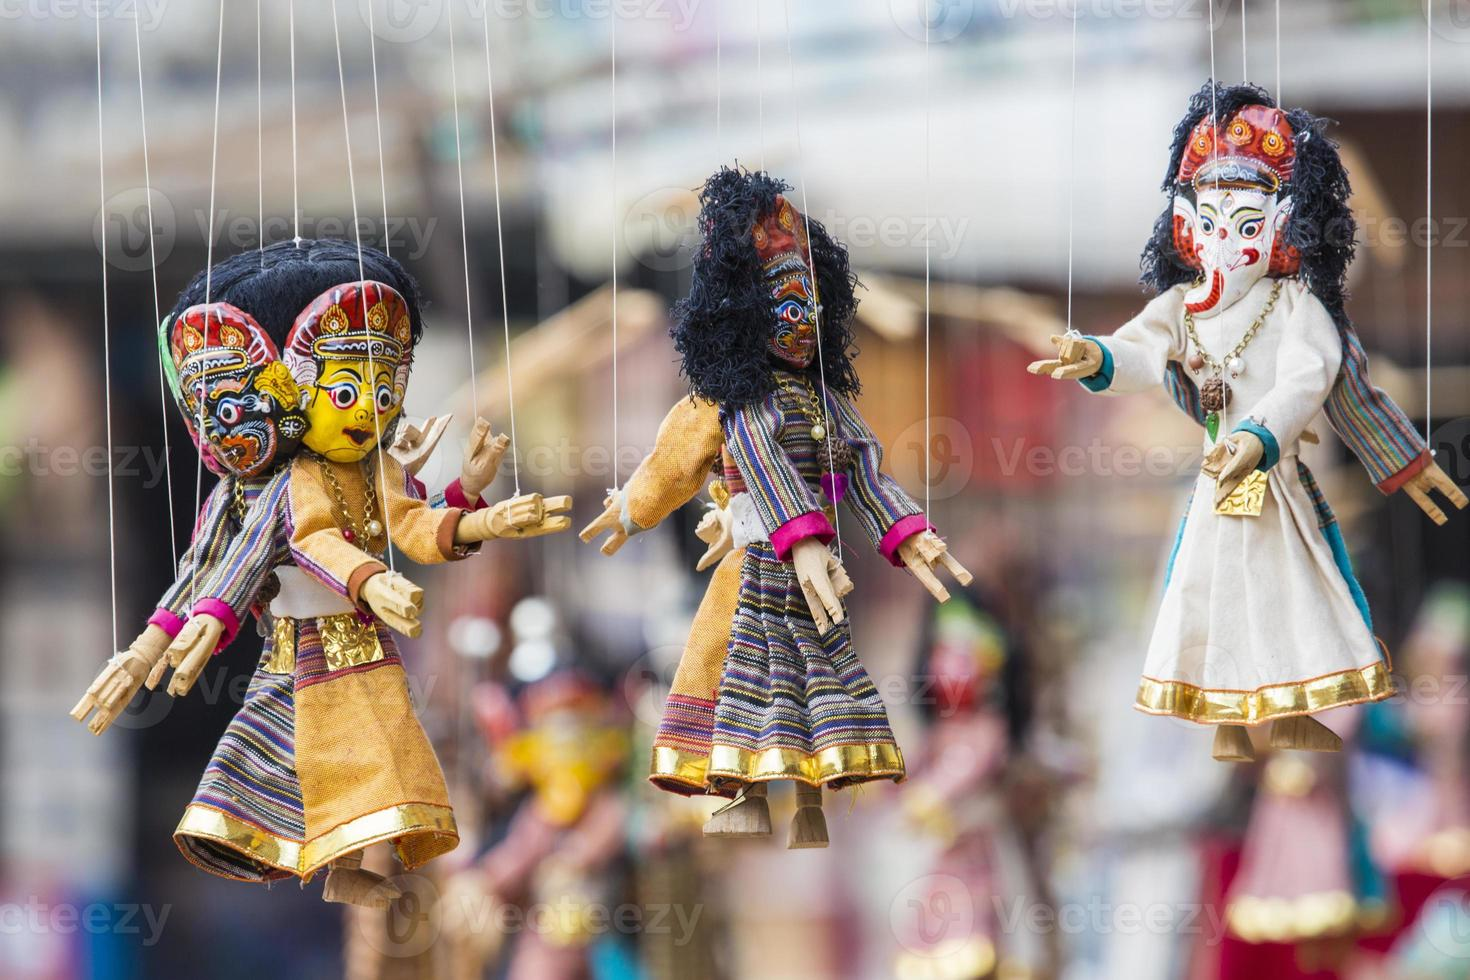 Masks, dolls and souvenirs in street shop at Durbar Square photo